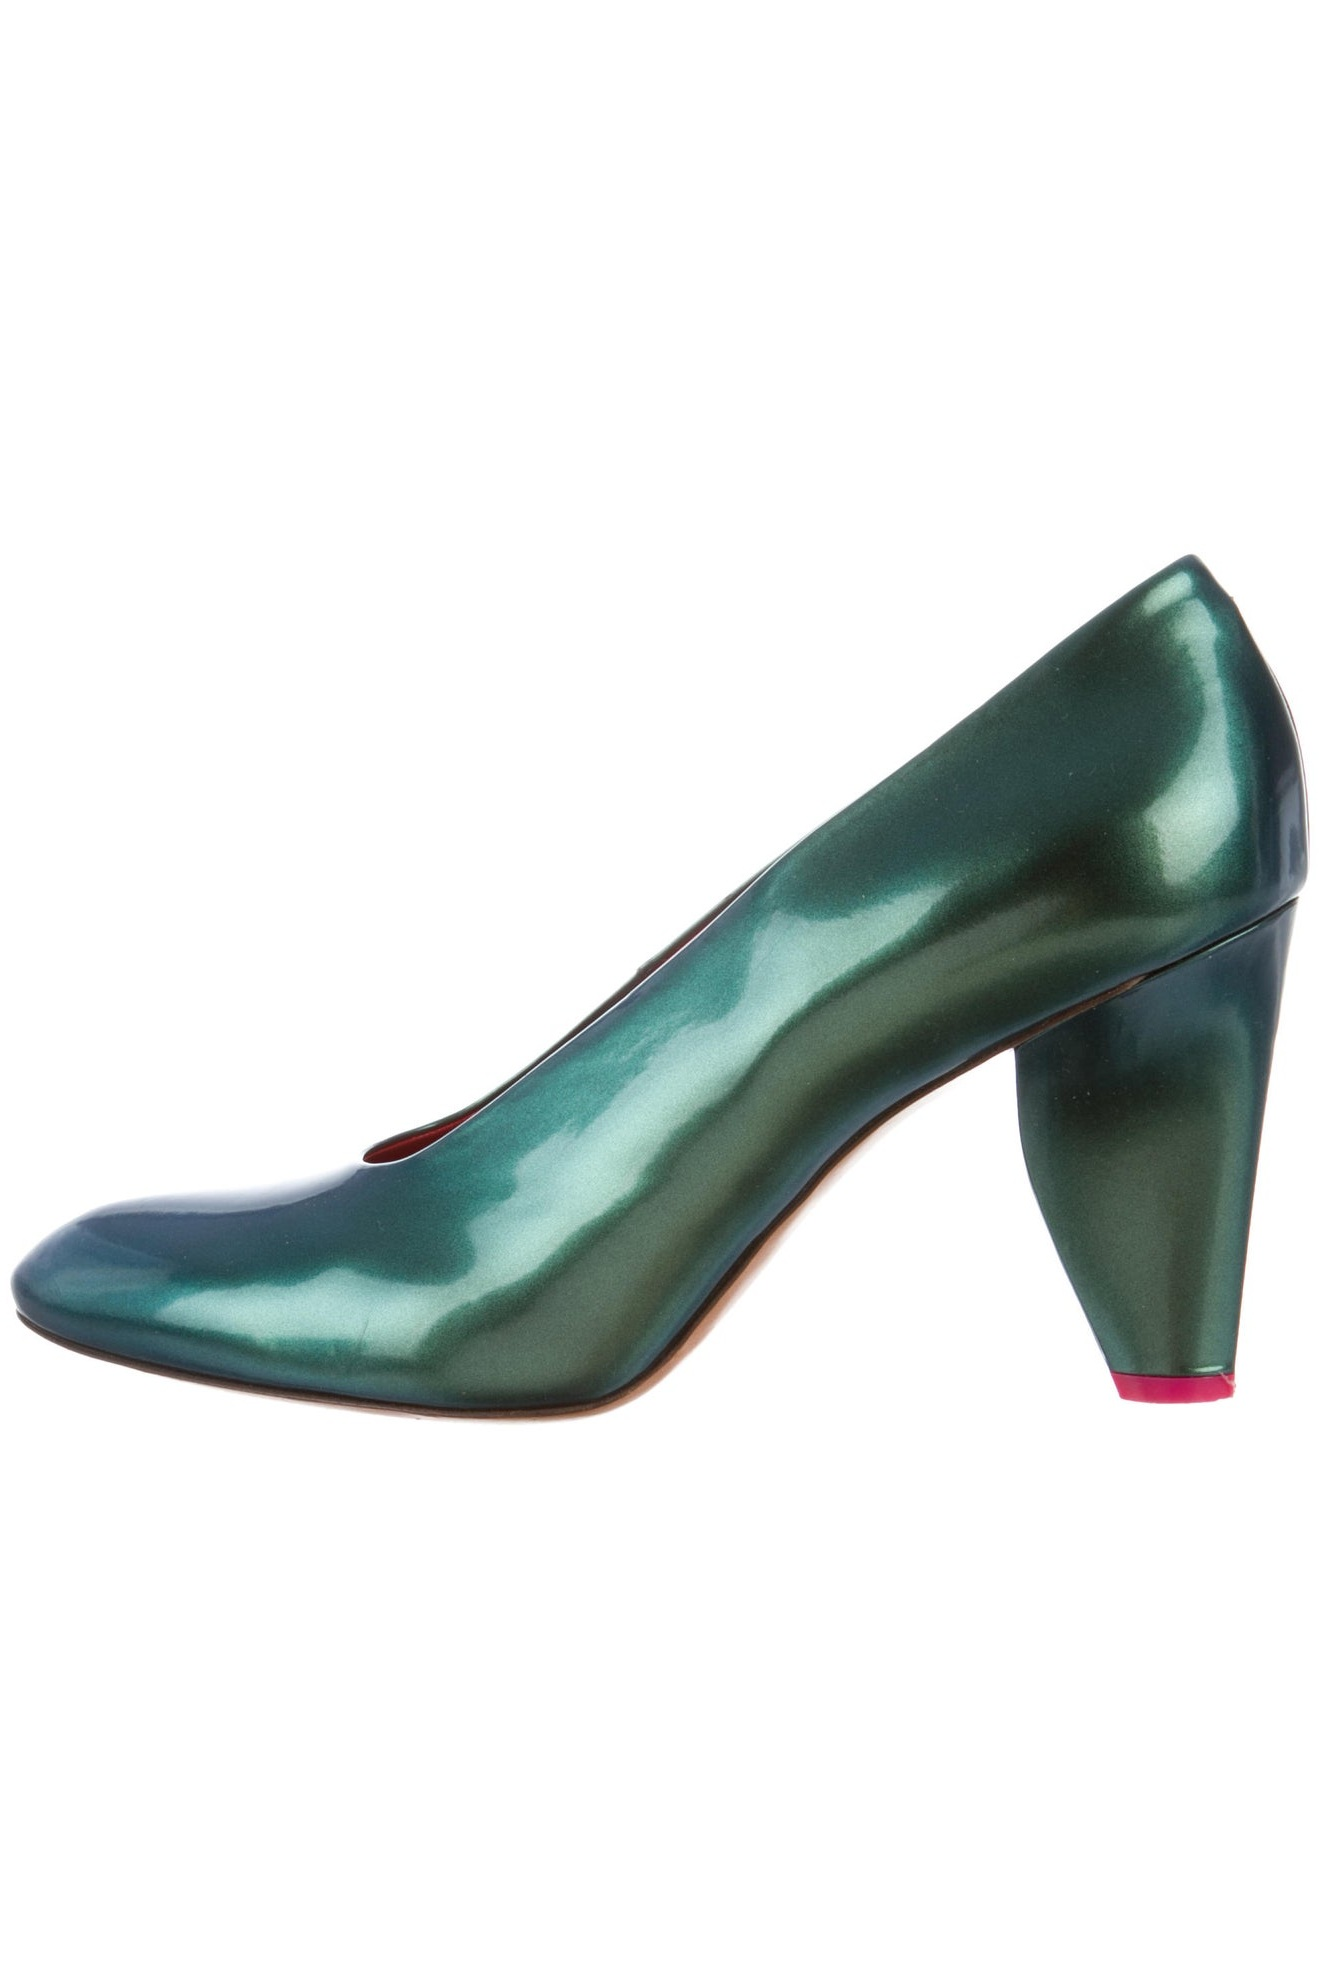 Celíne Metallic Round Toe Pump, $128, The Real Real